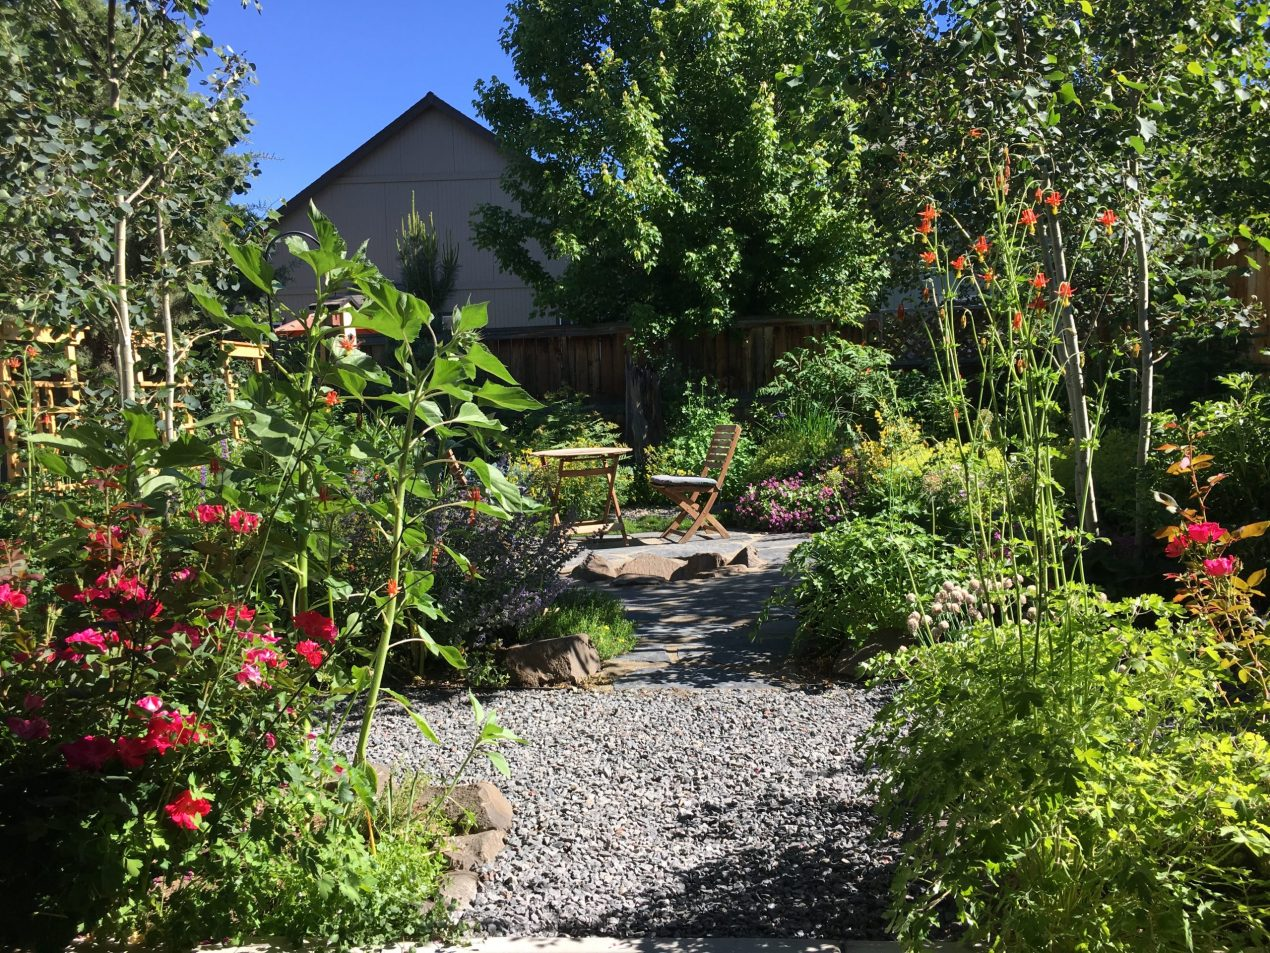 Garden in completion with large aspen trees, perrenials, a stone patio with firepit and rock paths